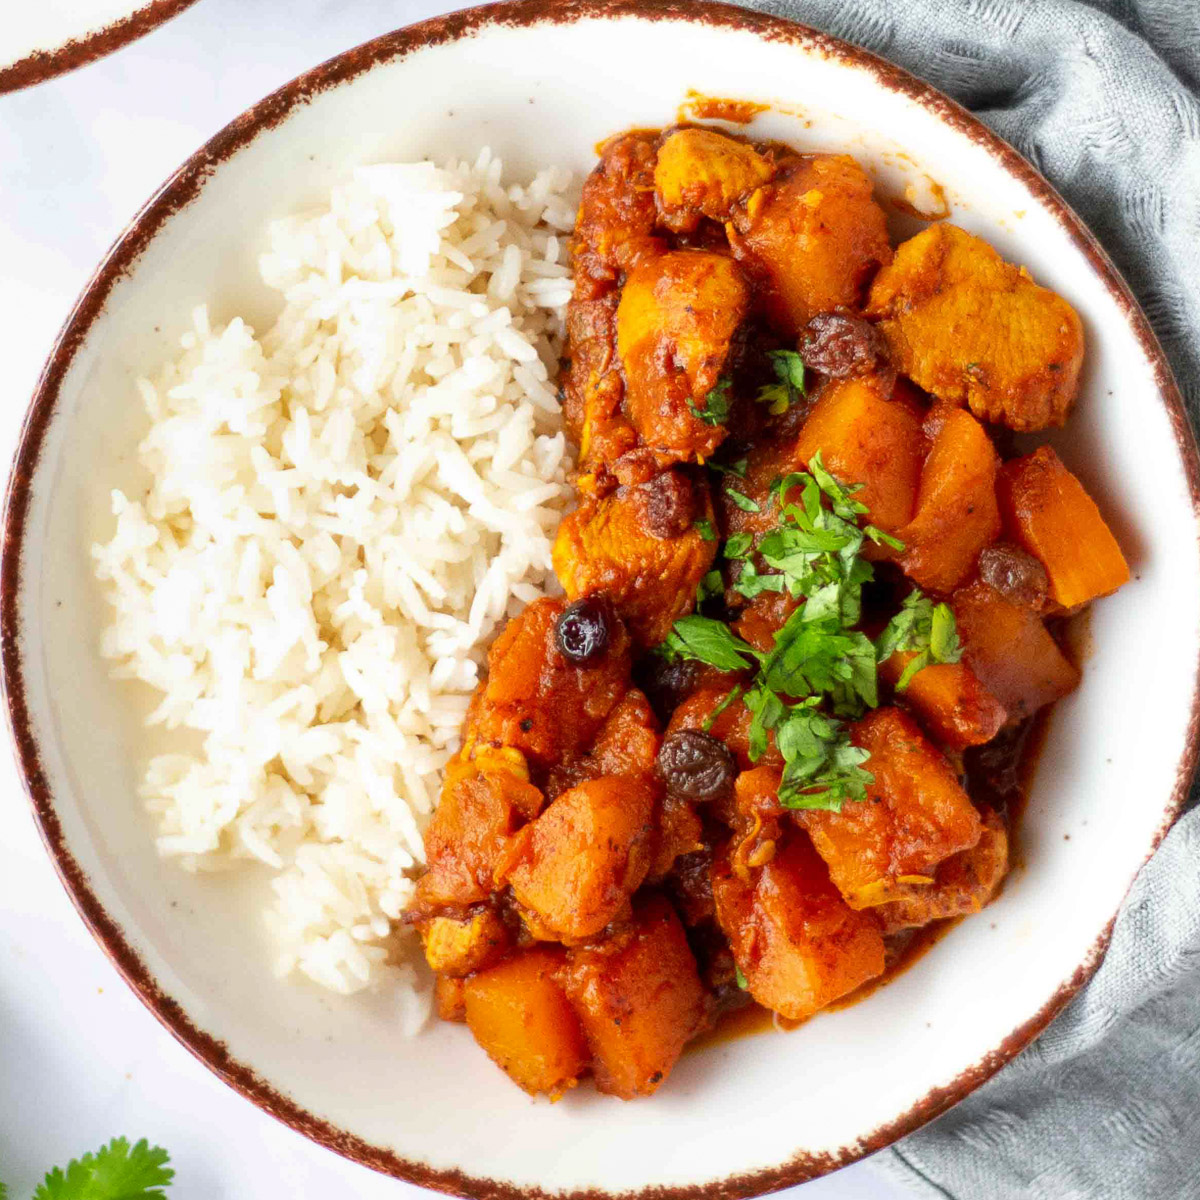 Moroccan pumpkin chicken stew on a plate with rice